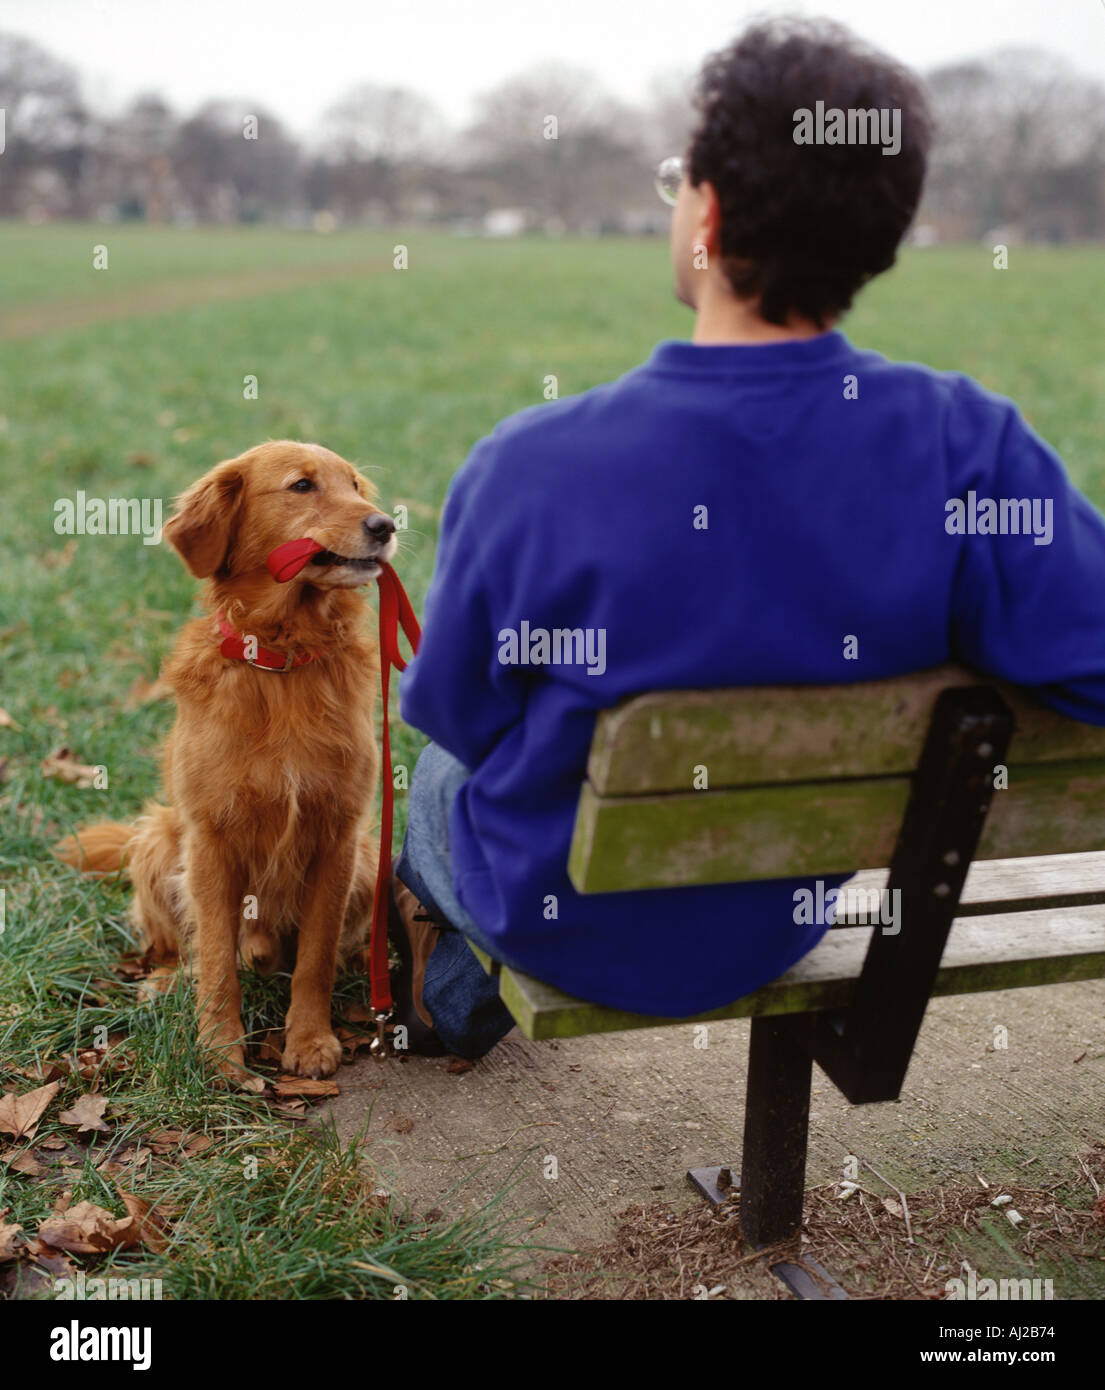 golden retriever waiting for a walk - Stock Image